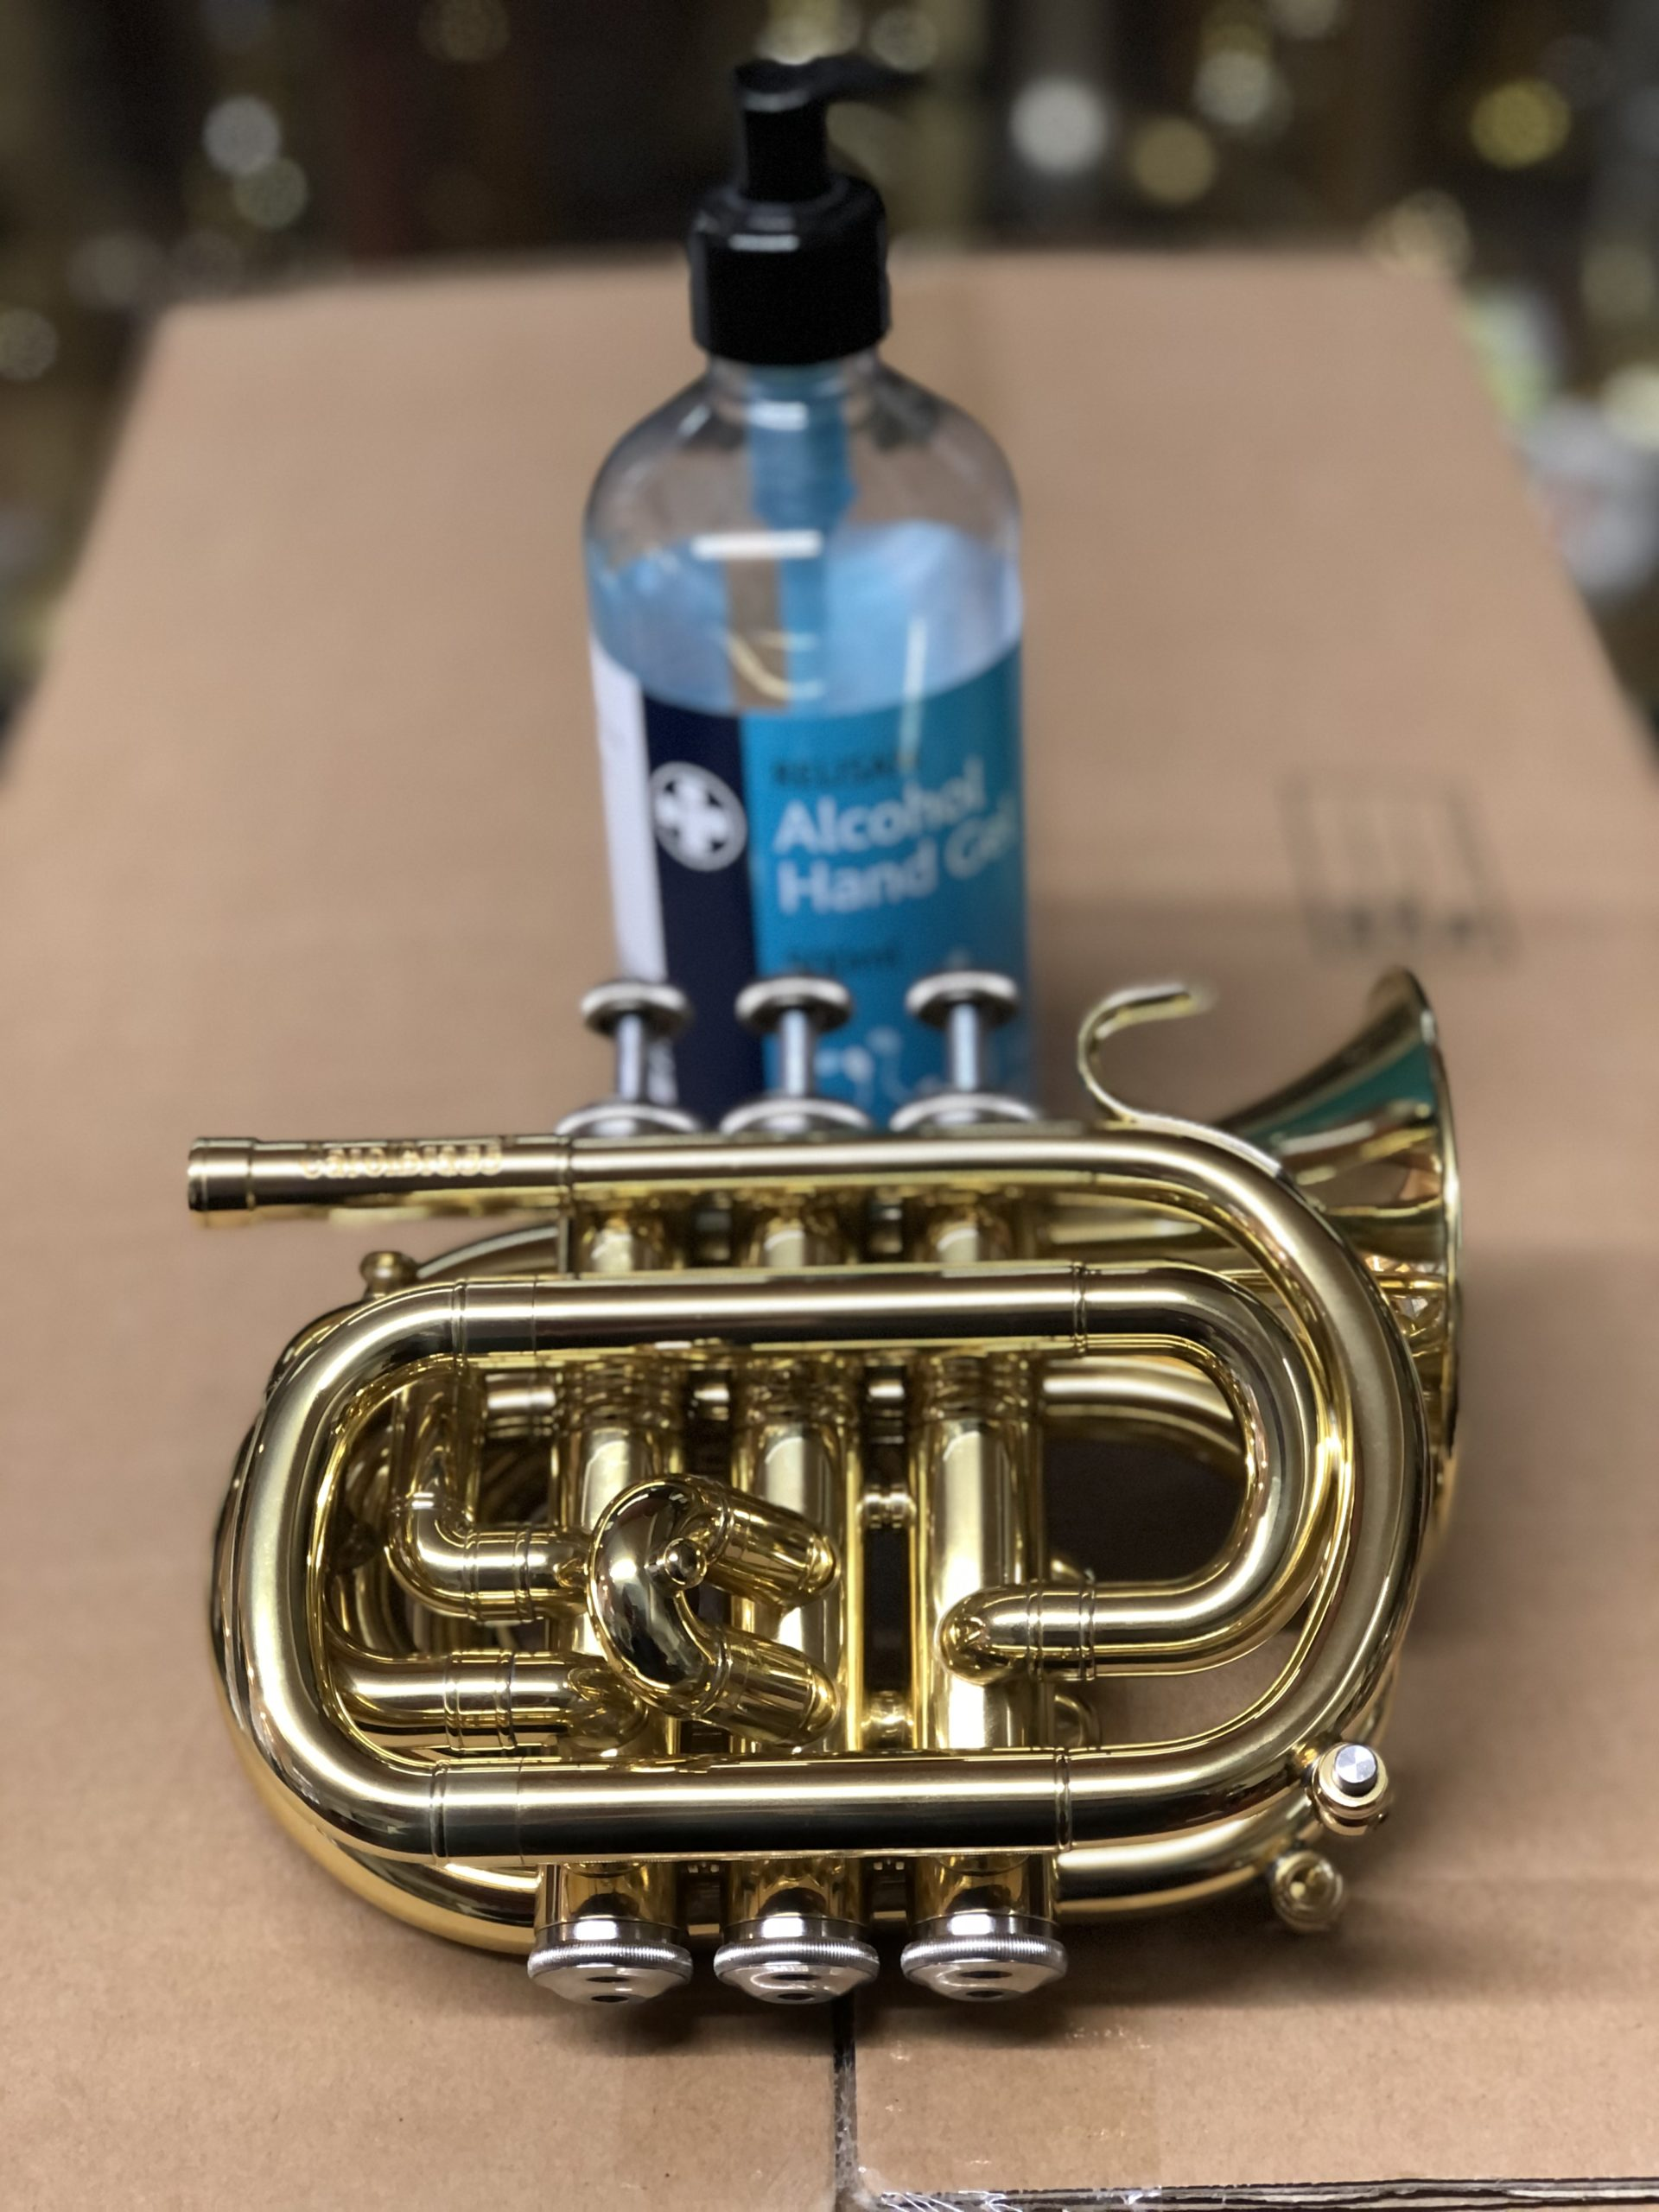 Hand Sanitiser and Your Instrument